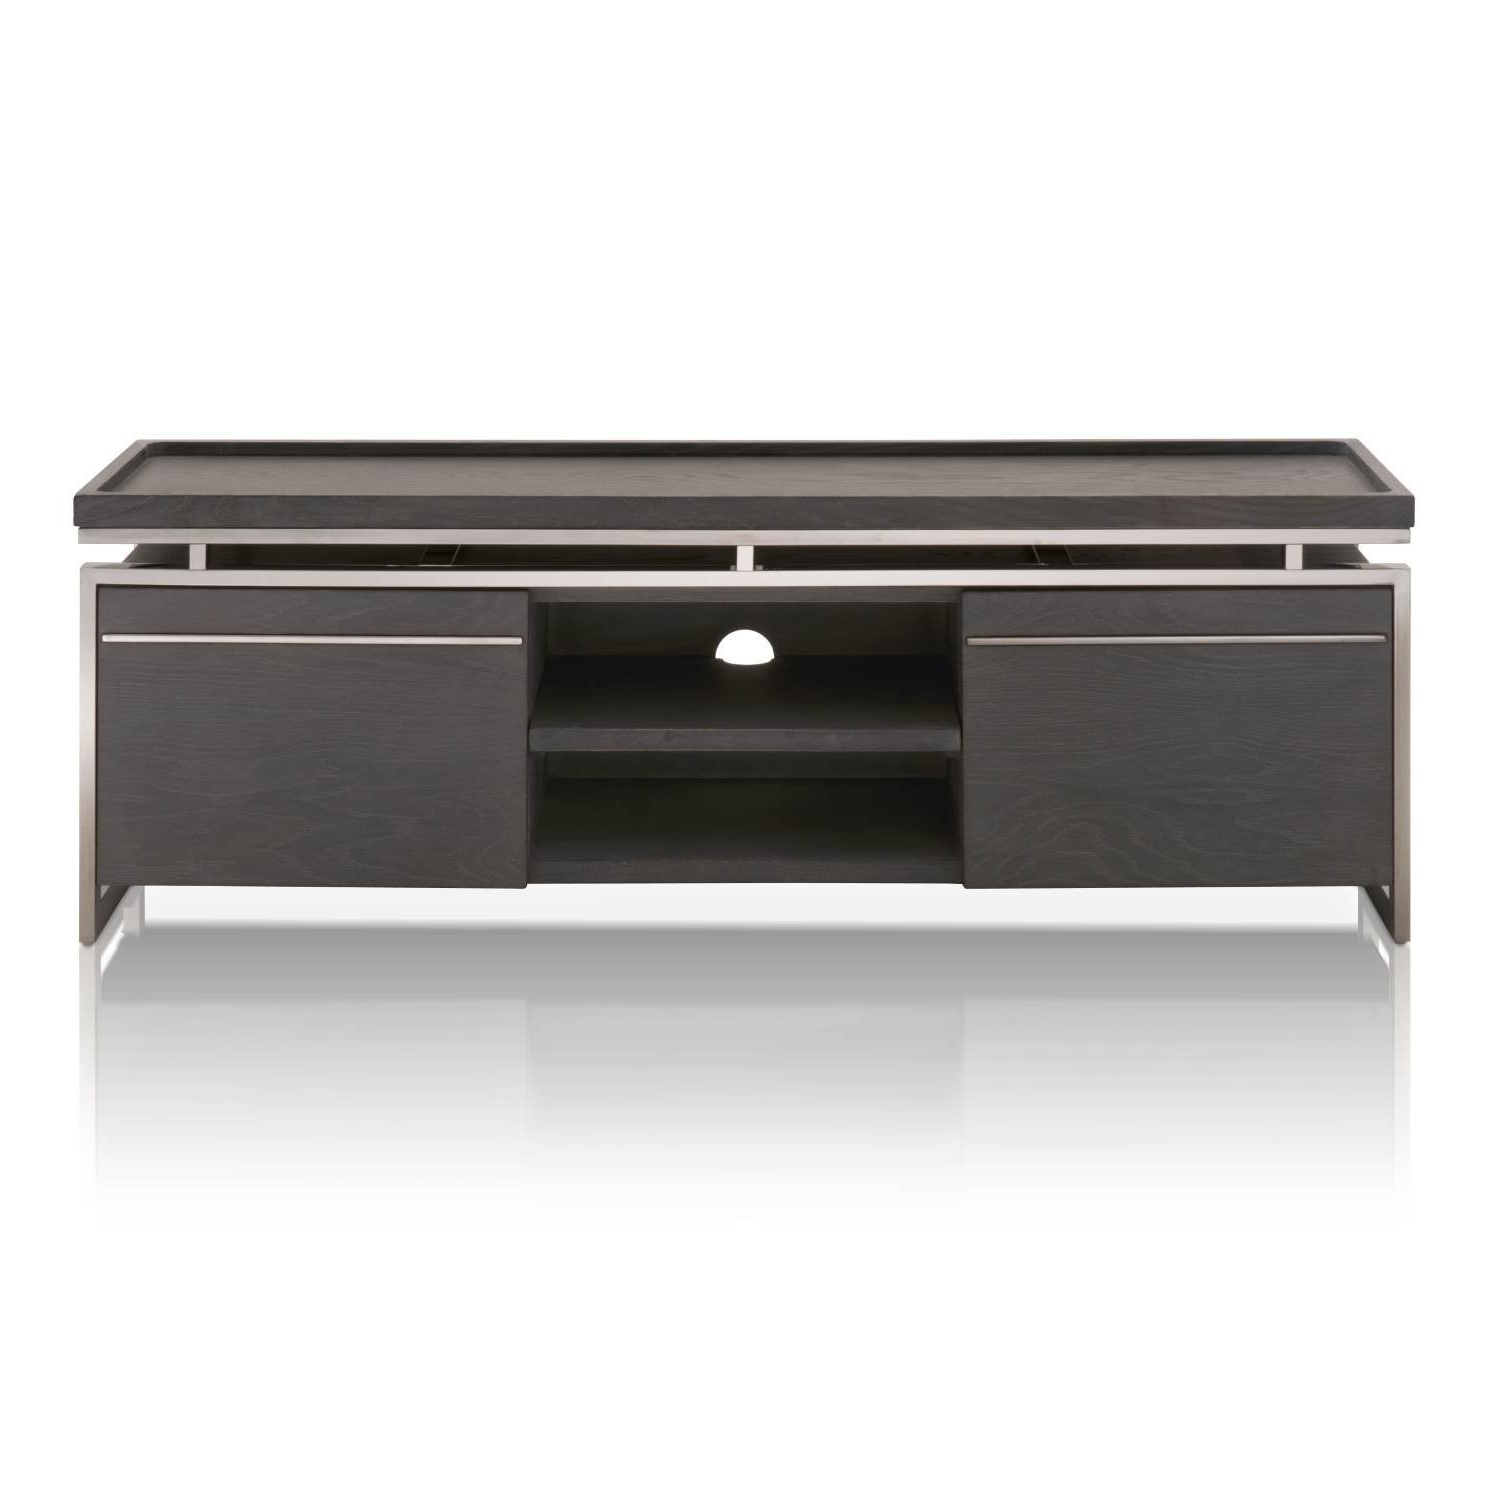 Very Cheap Tv Units Throughout Most Recent Cheap Tv Unit Black, Find Tv Unit Black Deals On Line At Alibaba (View 12 of 20)